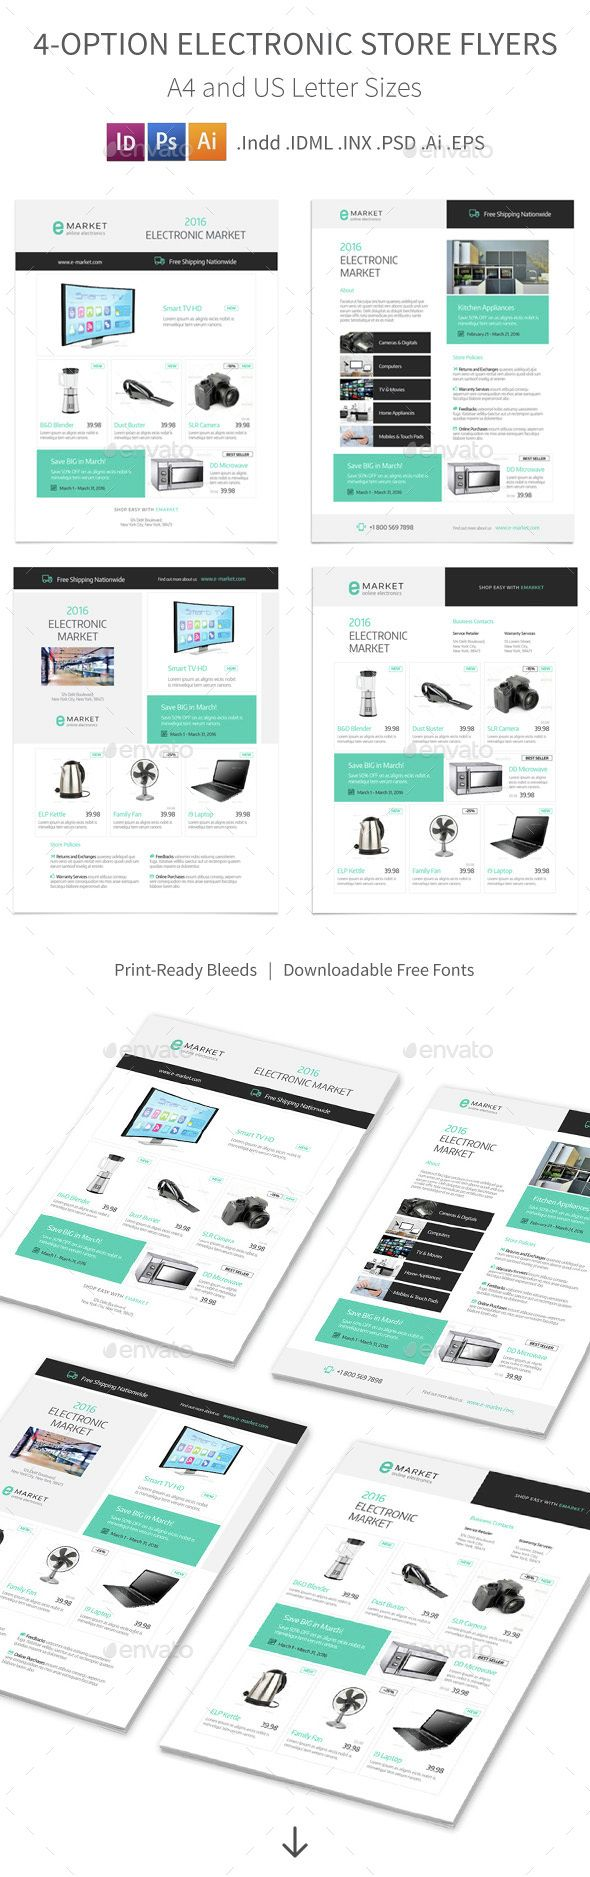 Electronic Store Flyers – 4 Options